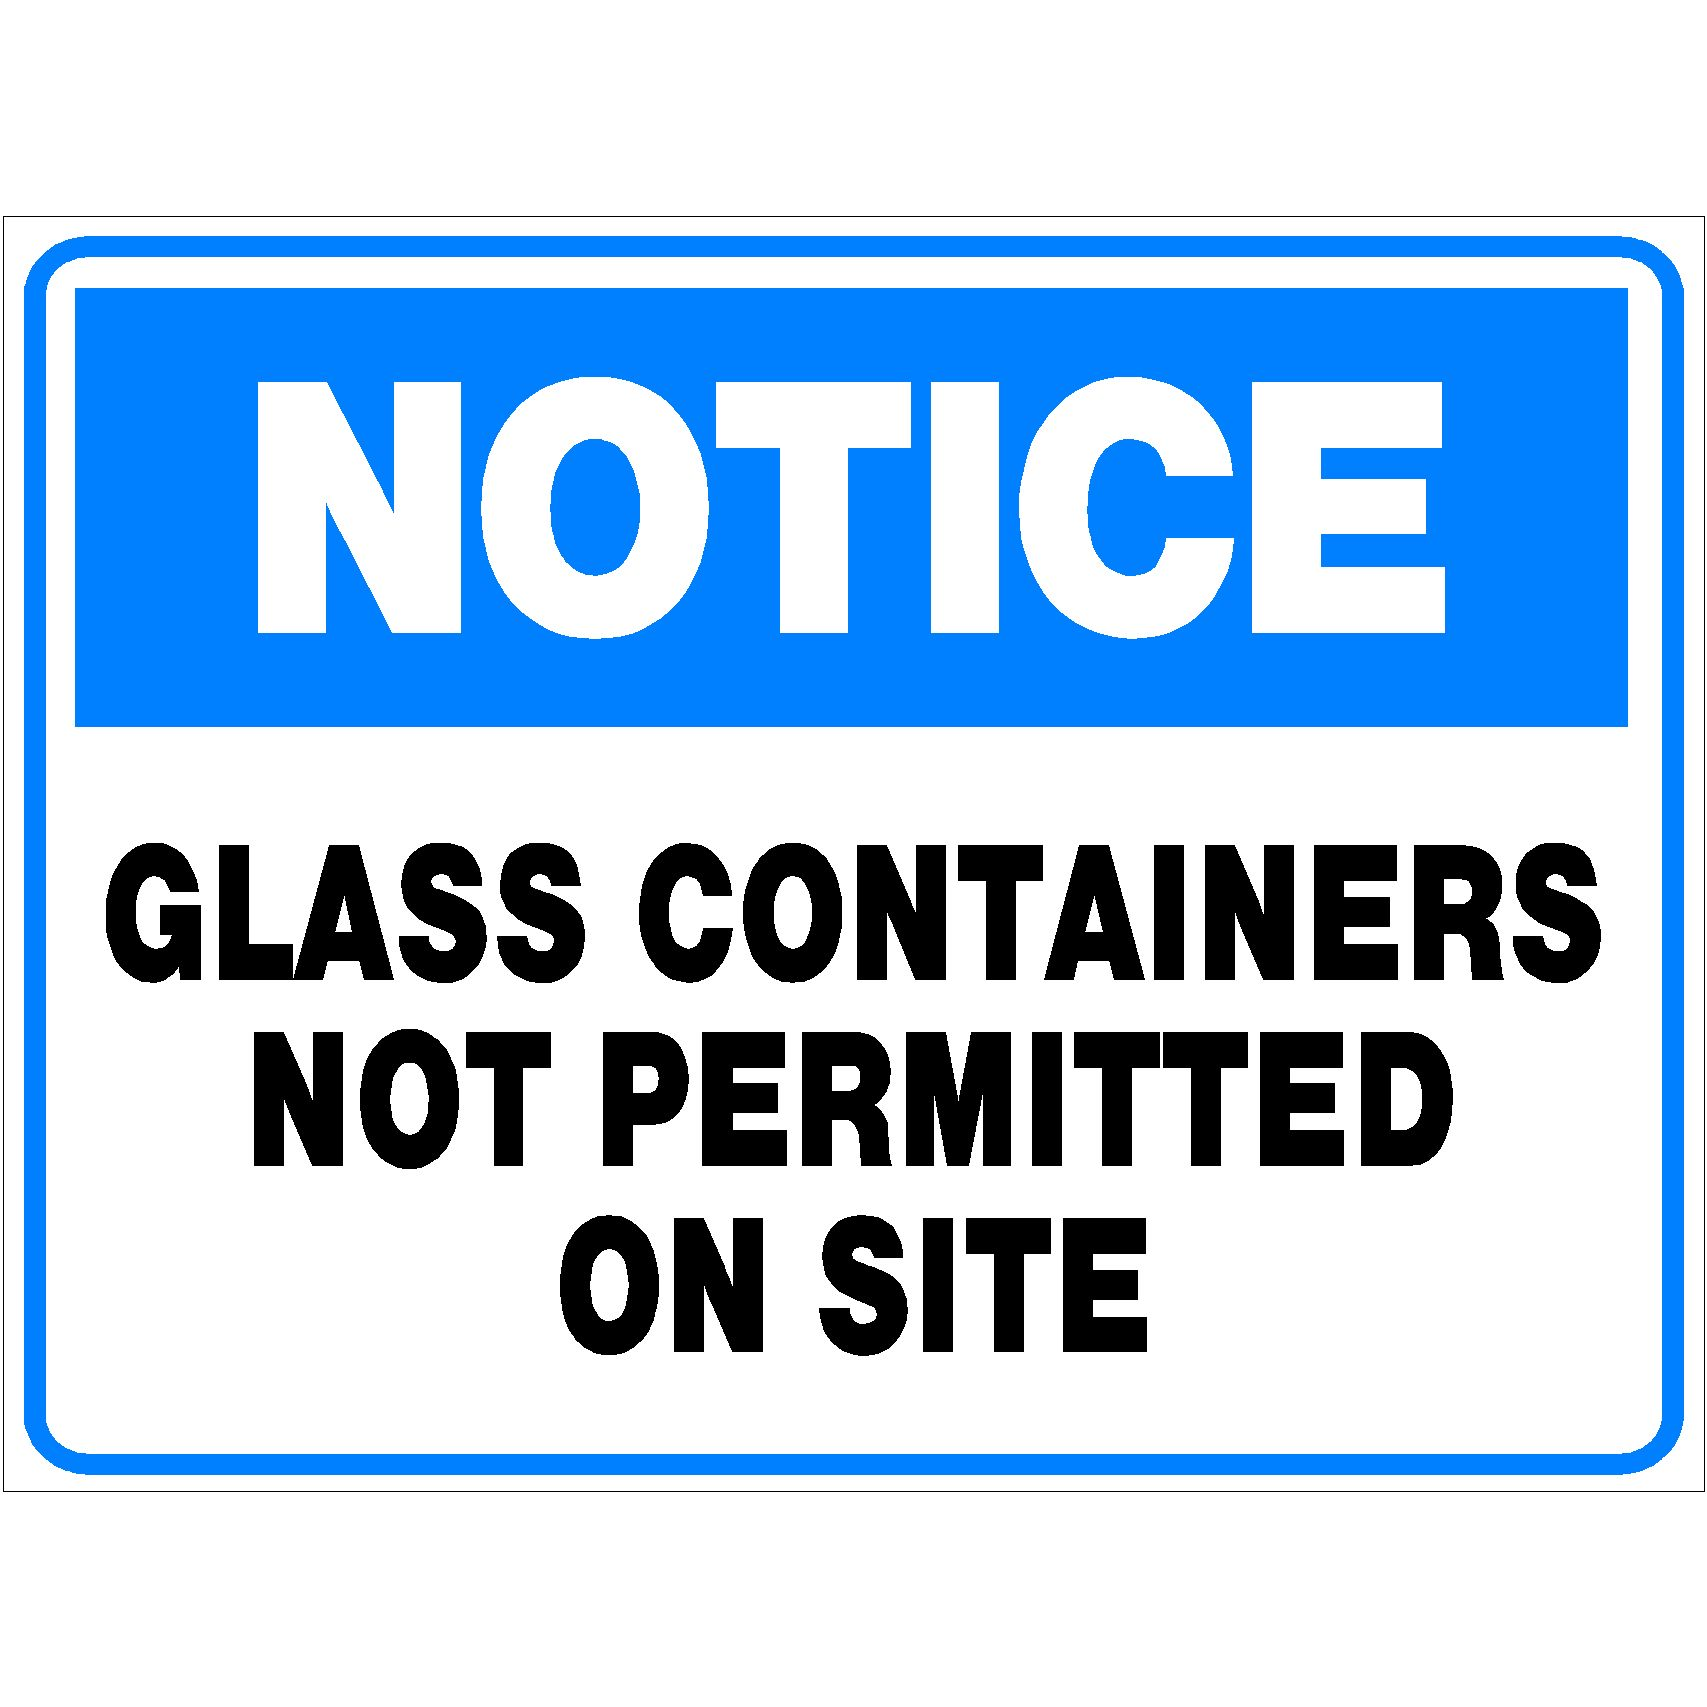 Notice Glass Containers Not Permitted On Site